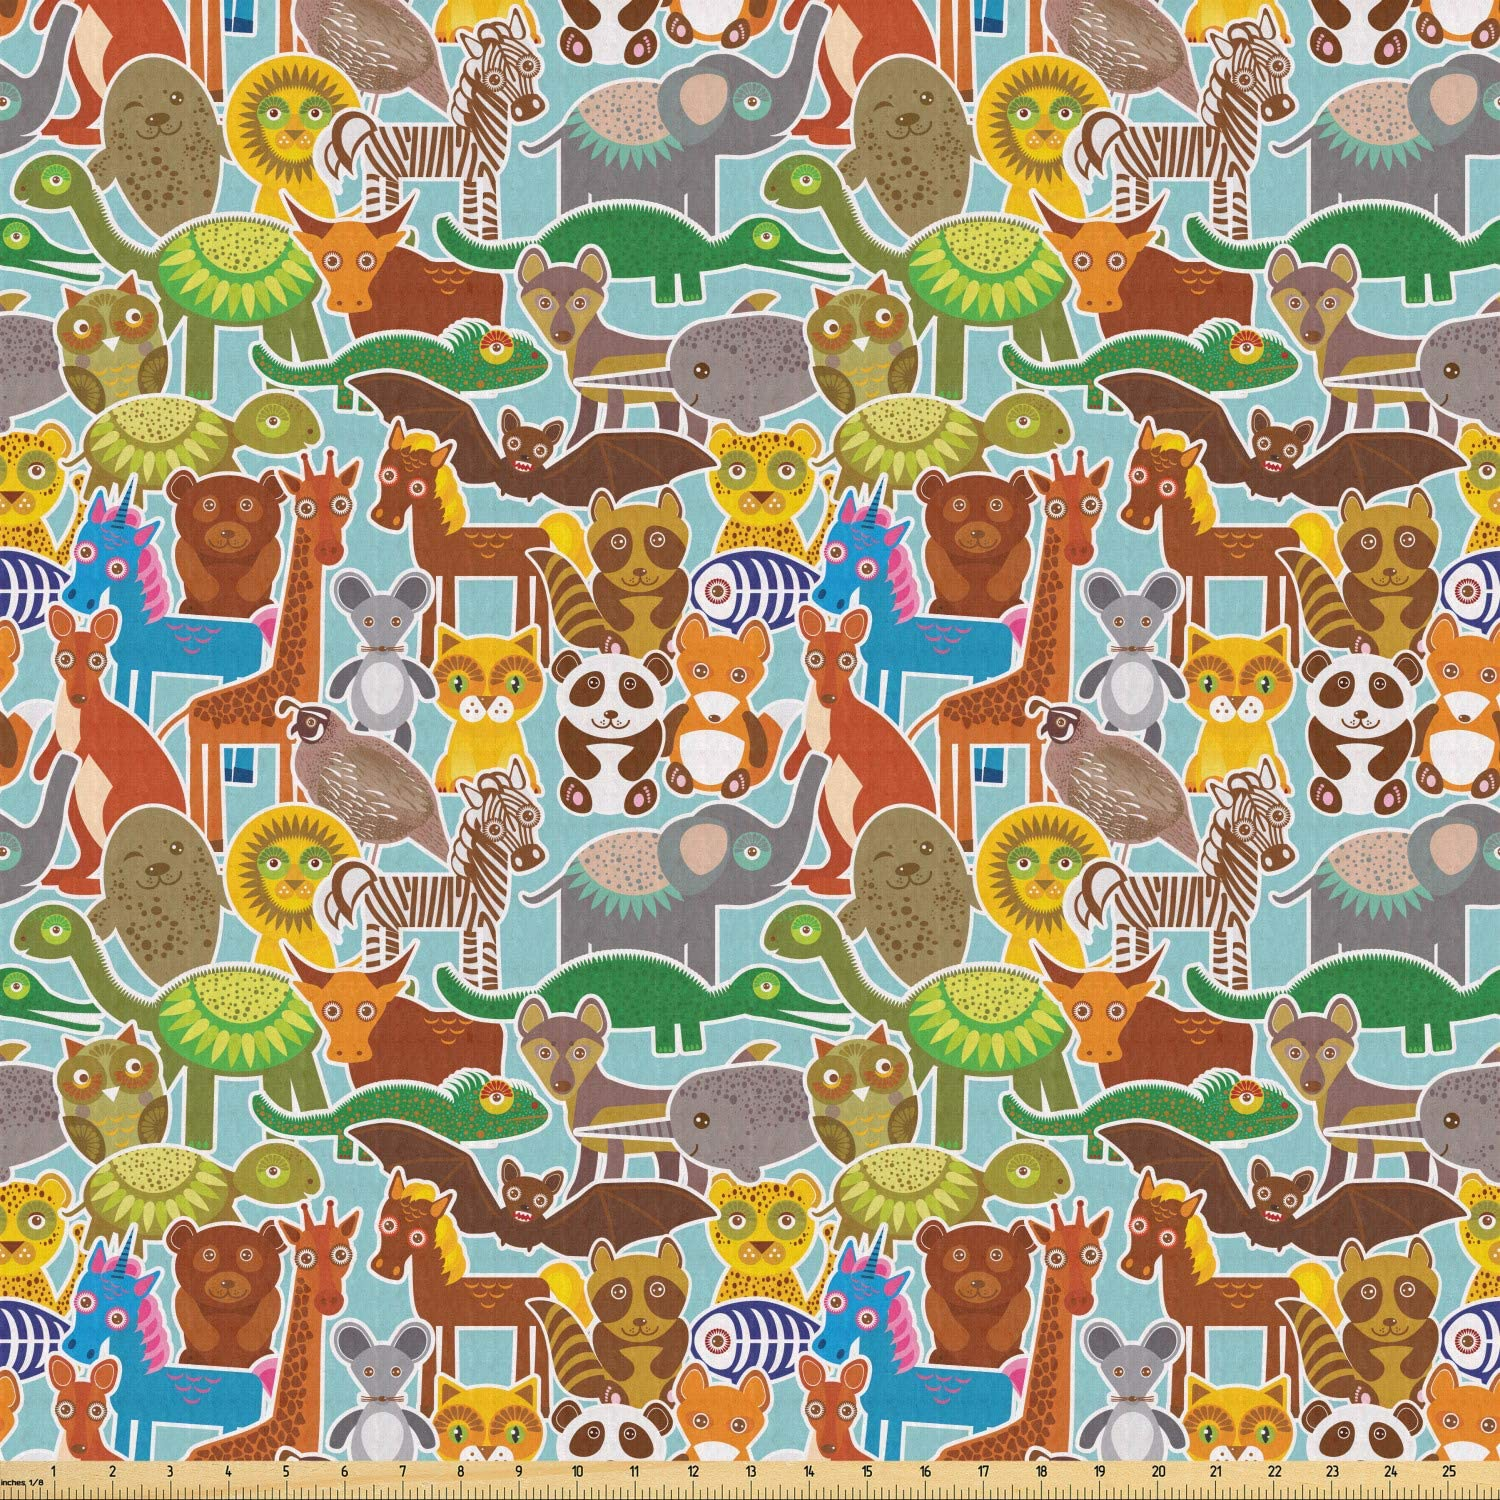 Ambesonne Animals Fabric by The Yard, Various Kinds of Wildlife Animals on a Blue Background Kids Nursery Cartoon Zoo, Stretch Knit Fabric for Clothing Sewing and Arts Crafts, 3 Yards, Multicolor